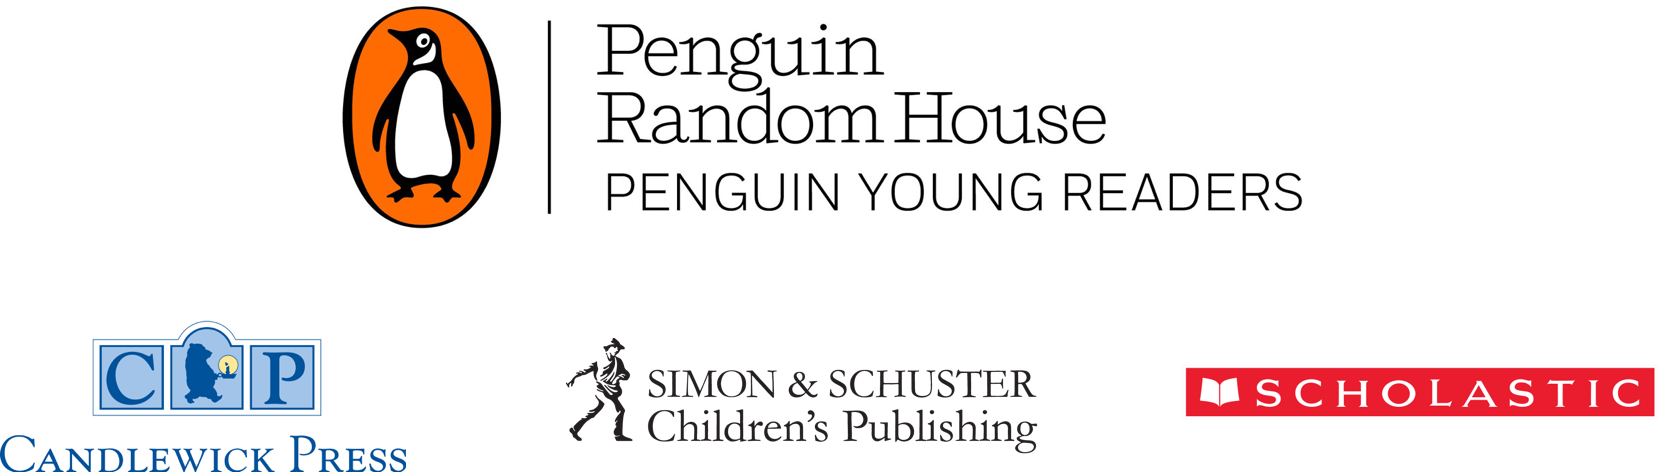 Penguin Random House - Penguin Young Readers, Candlewick Press, Simon & Schuster Children's Publishing, and Scholastic